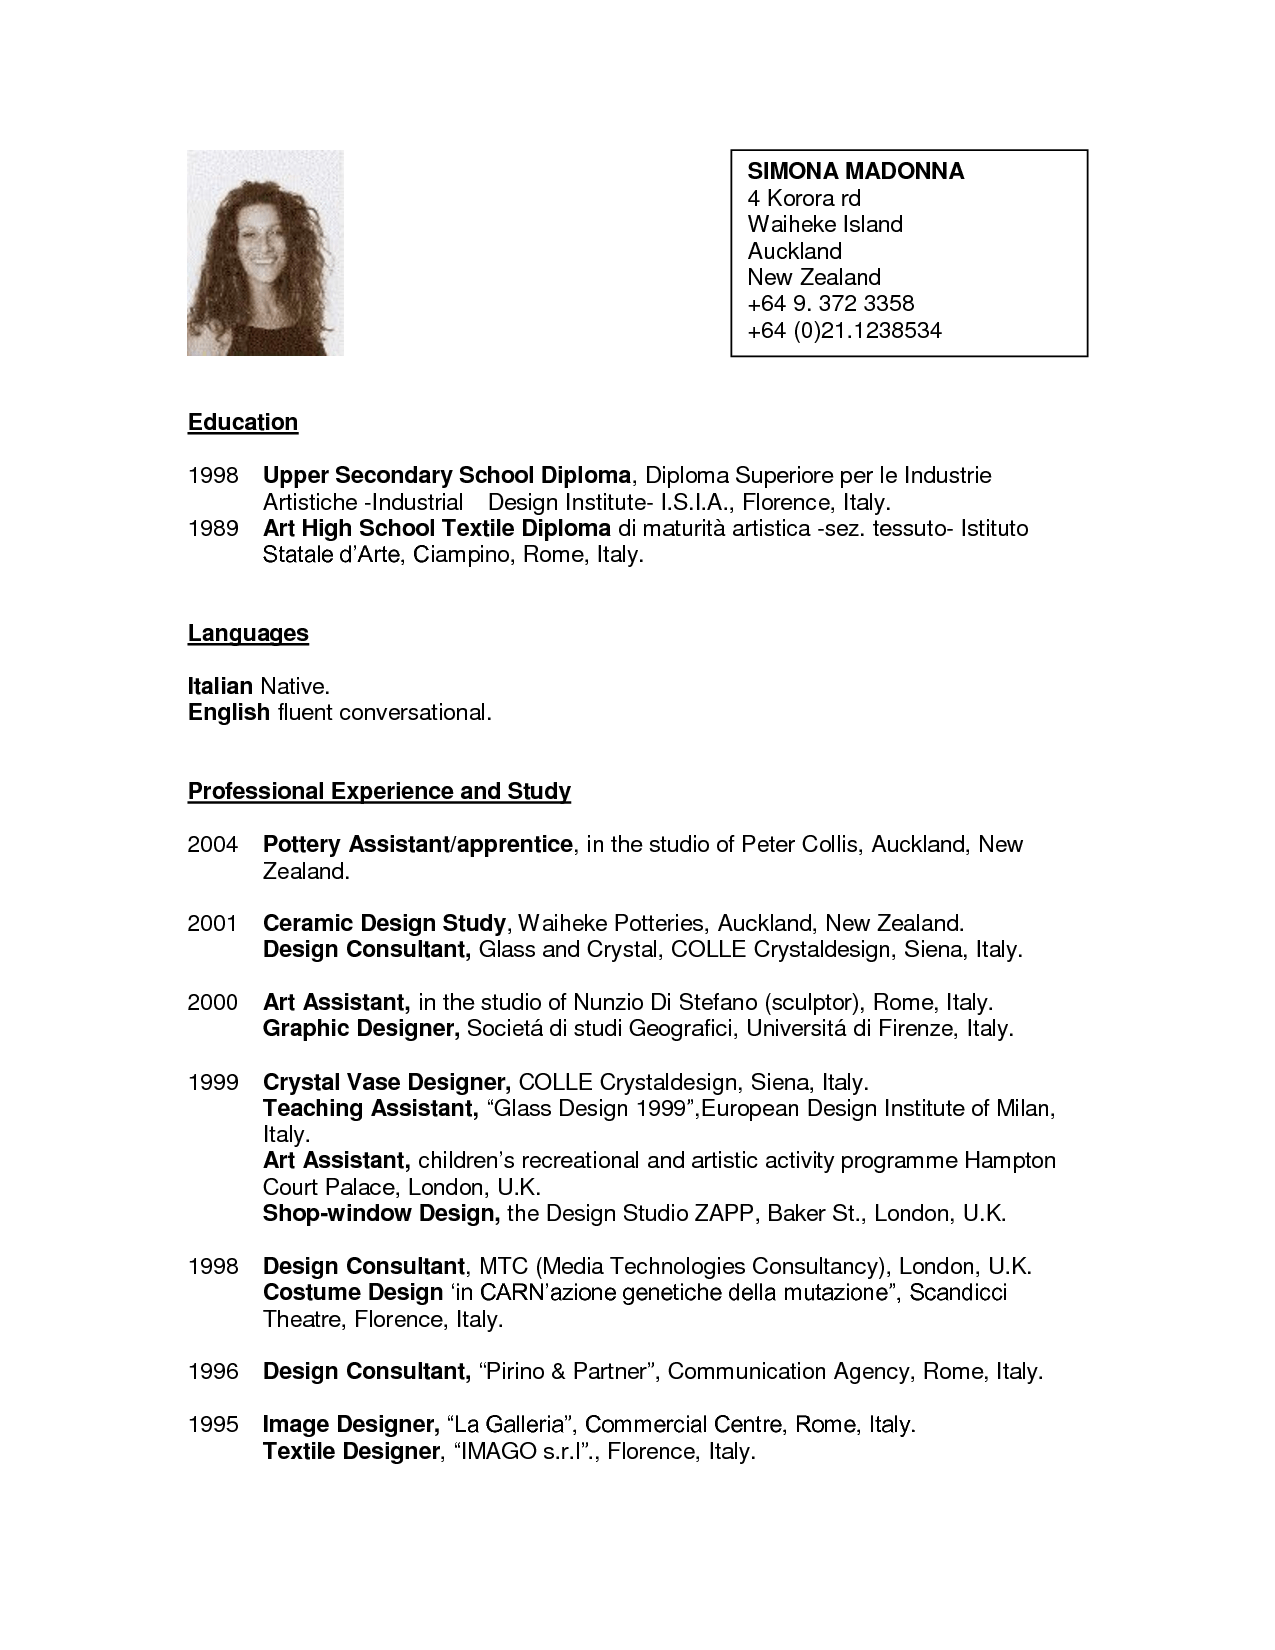 cv sample for new zealand, Get my essay online now ::: Zero